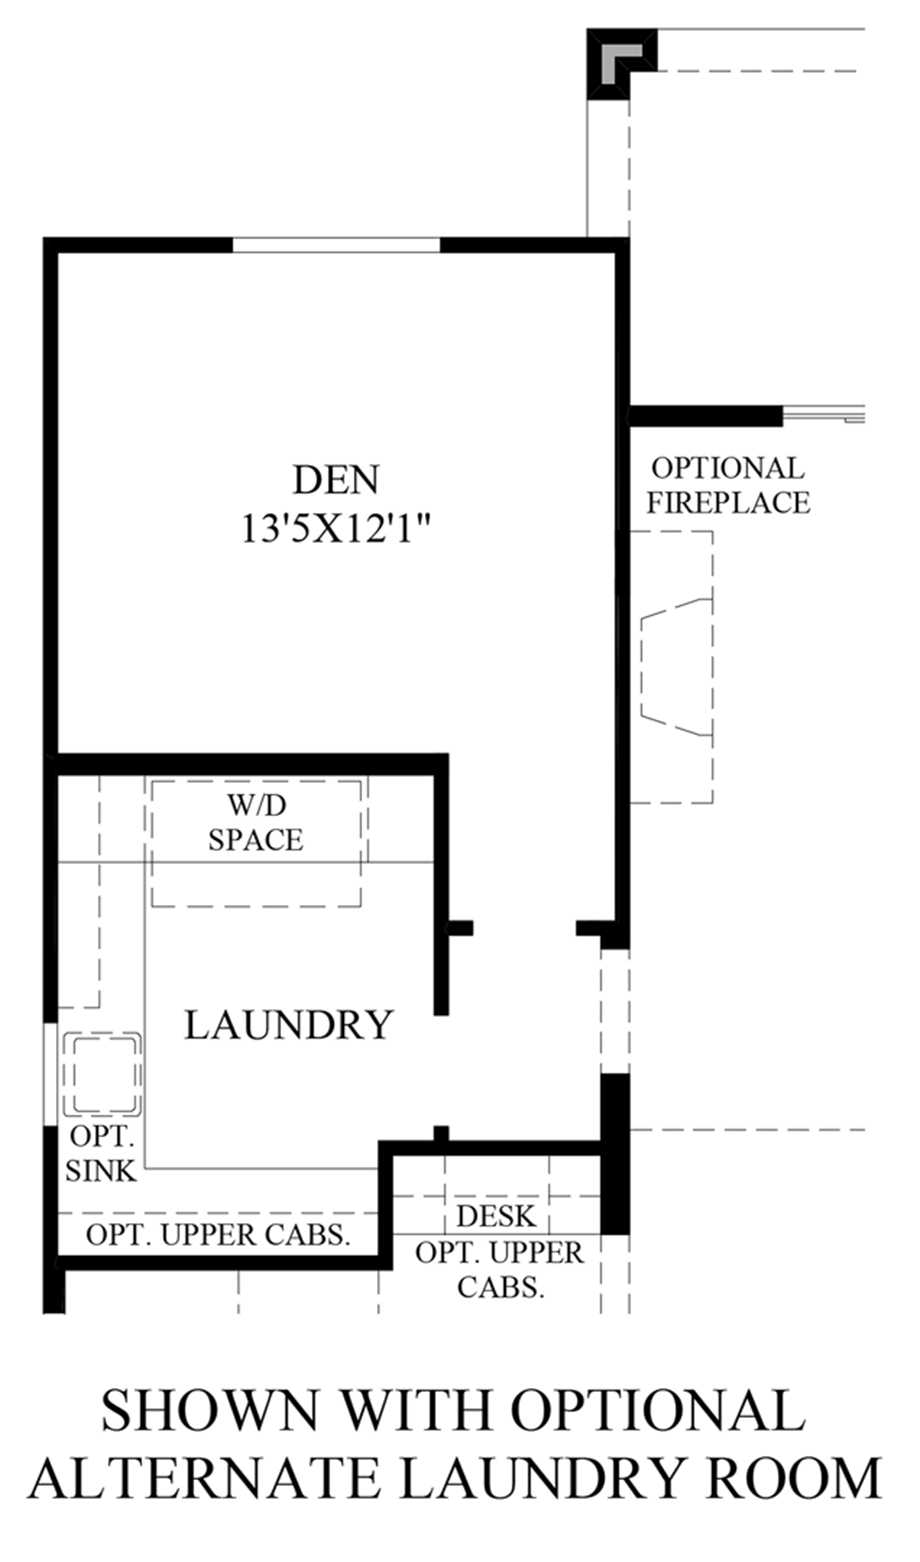 Optional Alternate Laundry Room Floor Plan